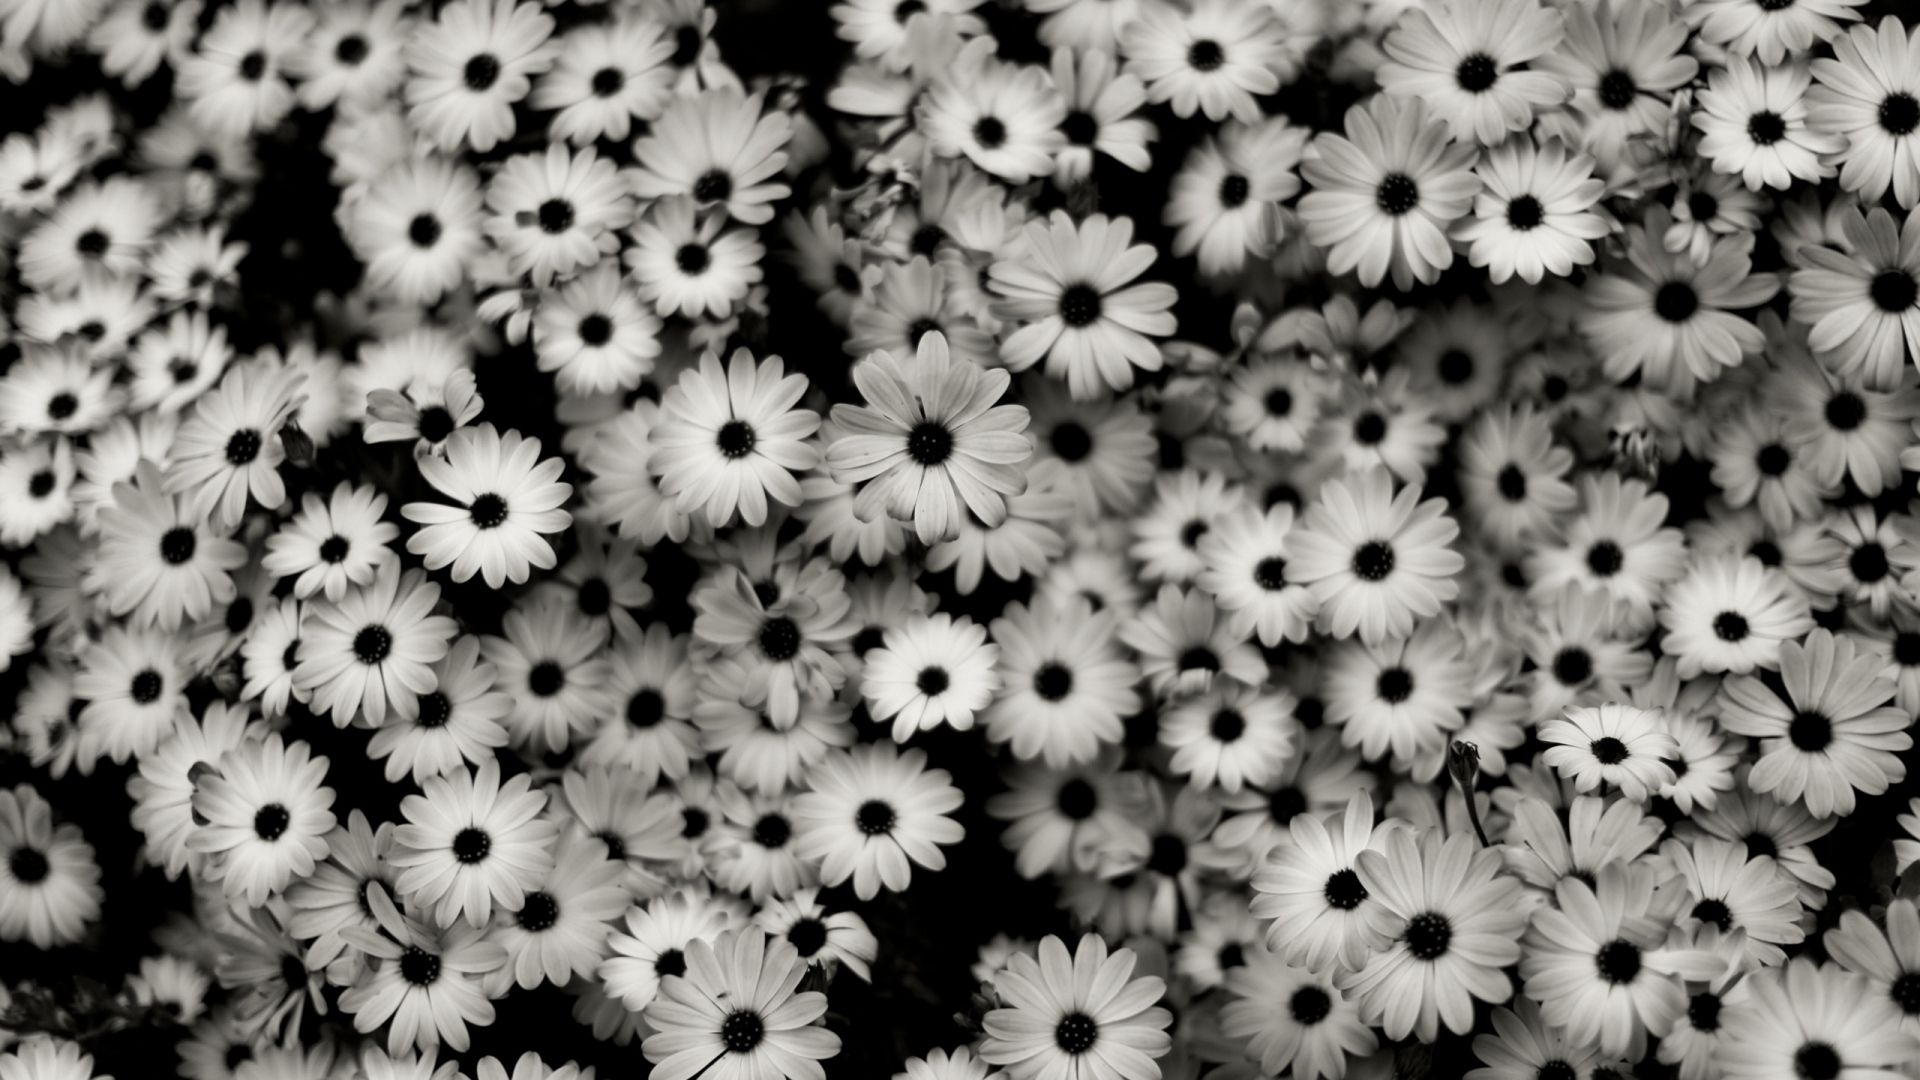 White Daisies Hd Wallpapers Hd Sharovarka Pinterest Black And White Flowers White Flower Wallpaper Black And White Background